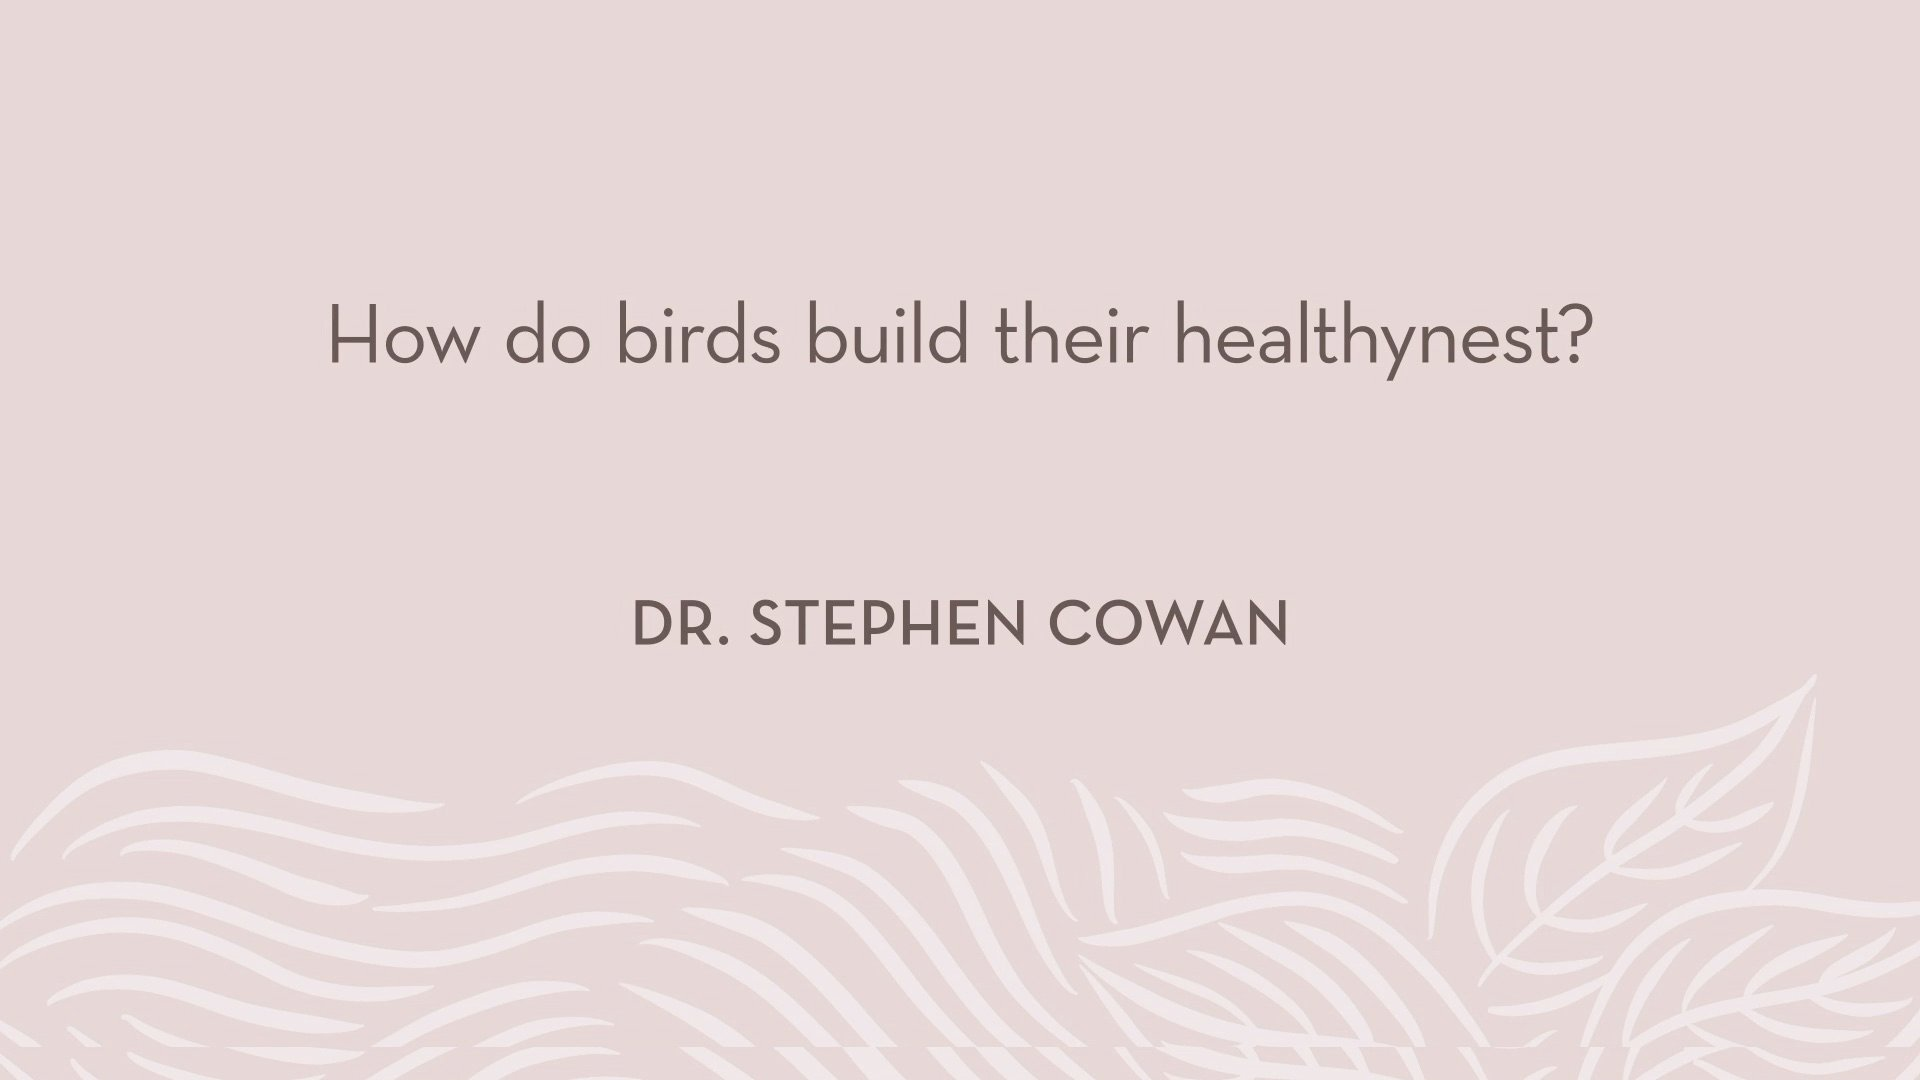 Dr. Cowan | How do birds build their healthynest?